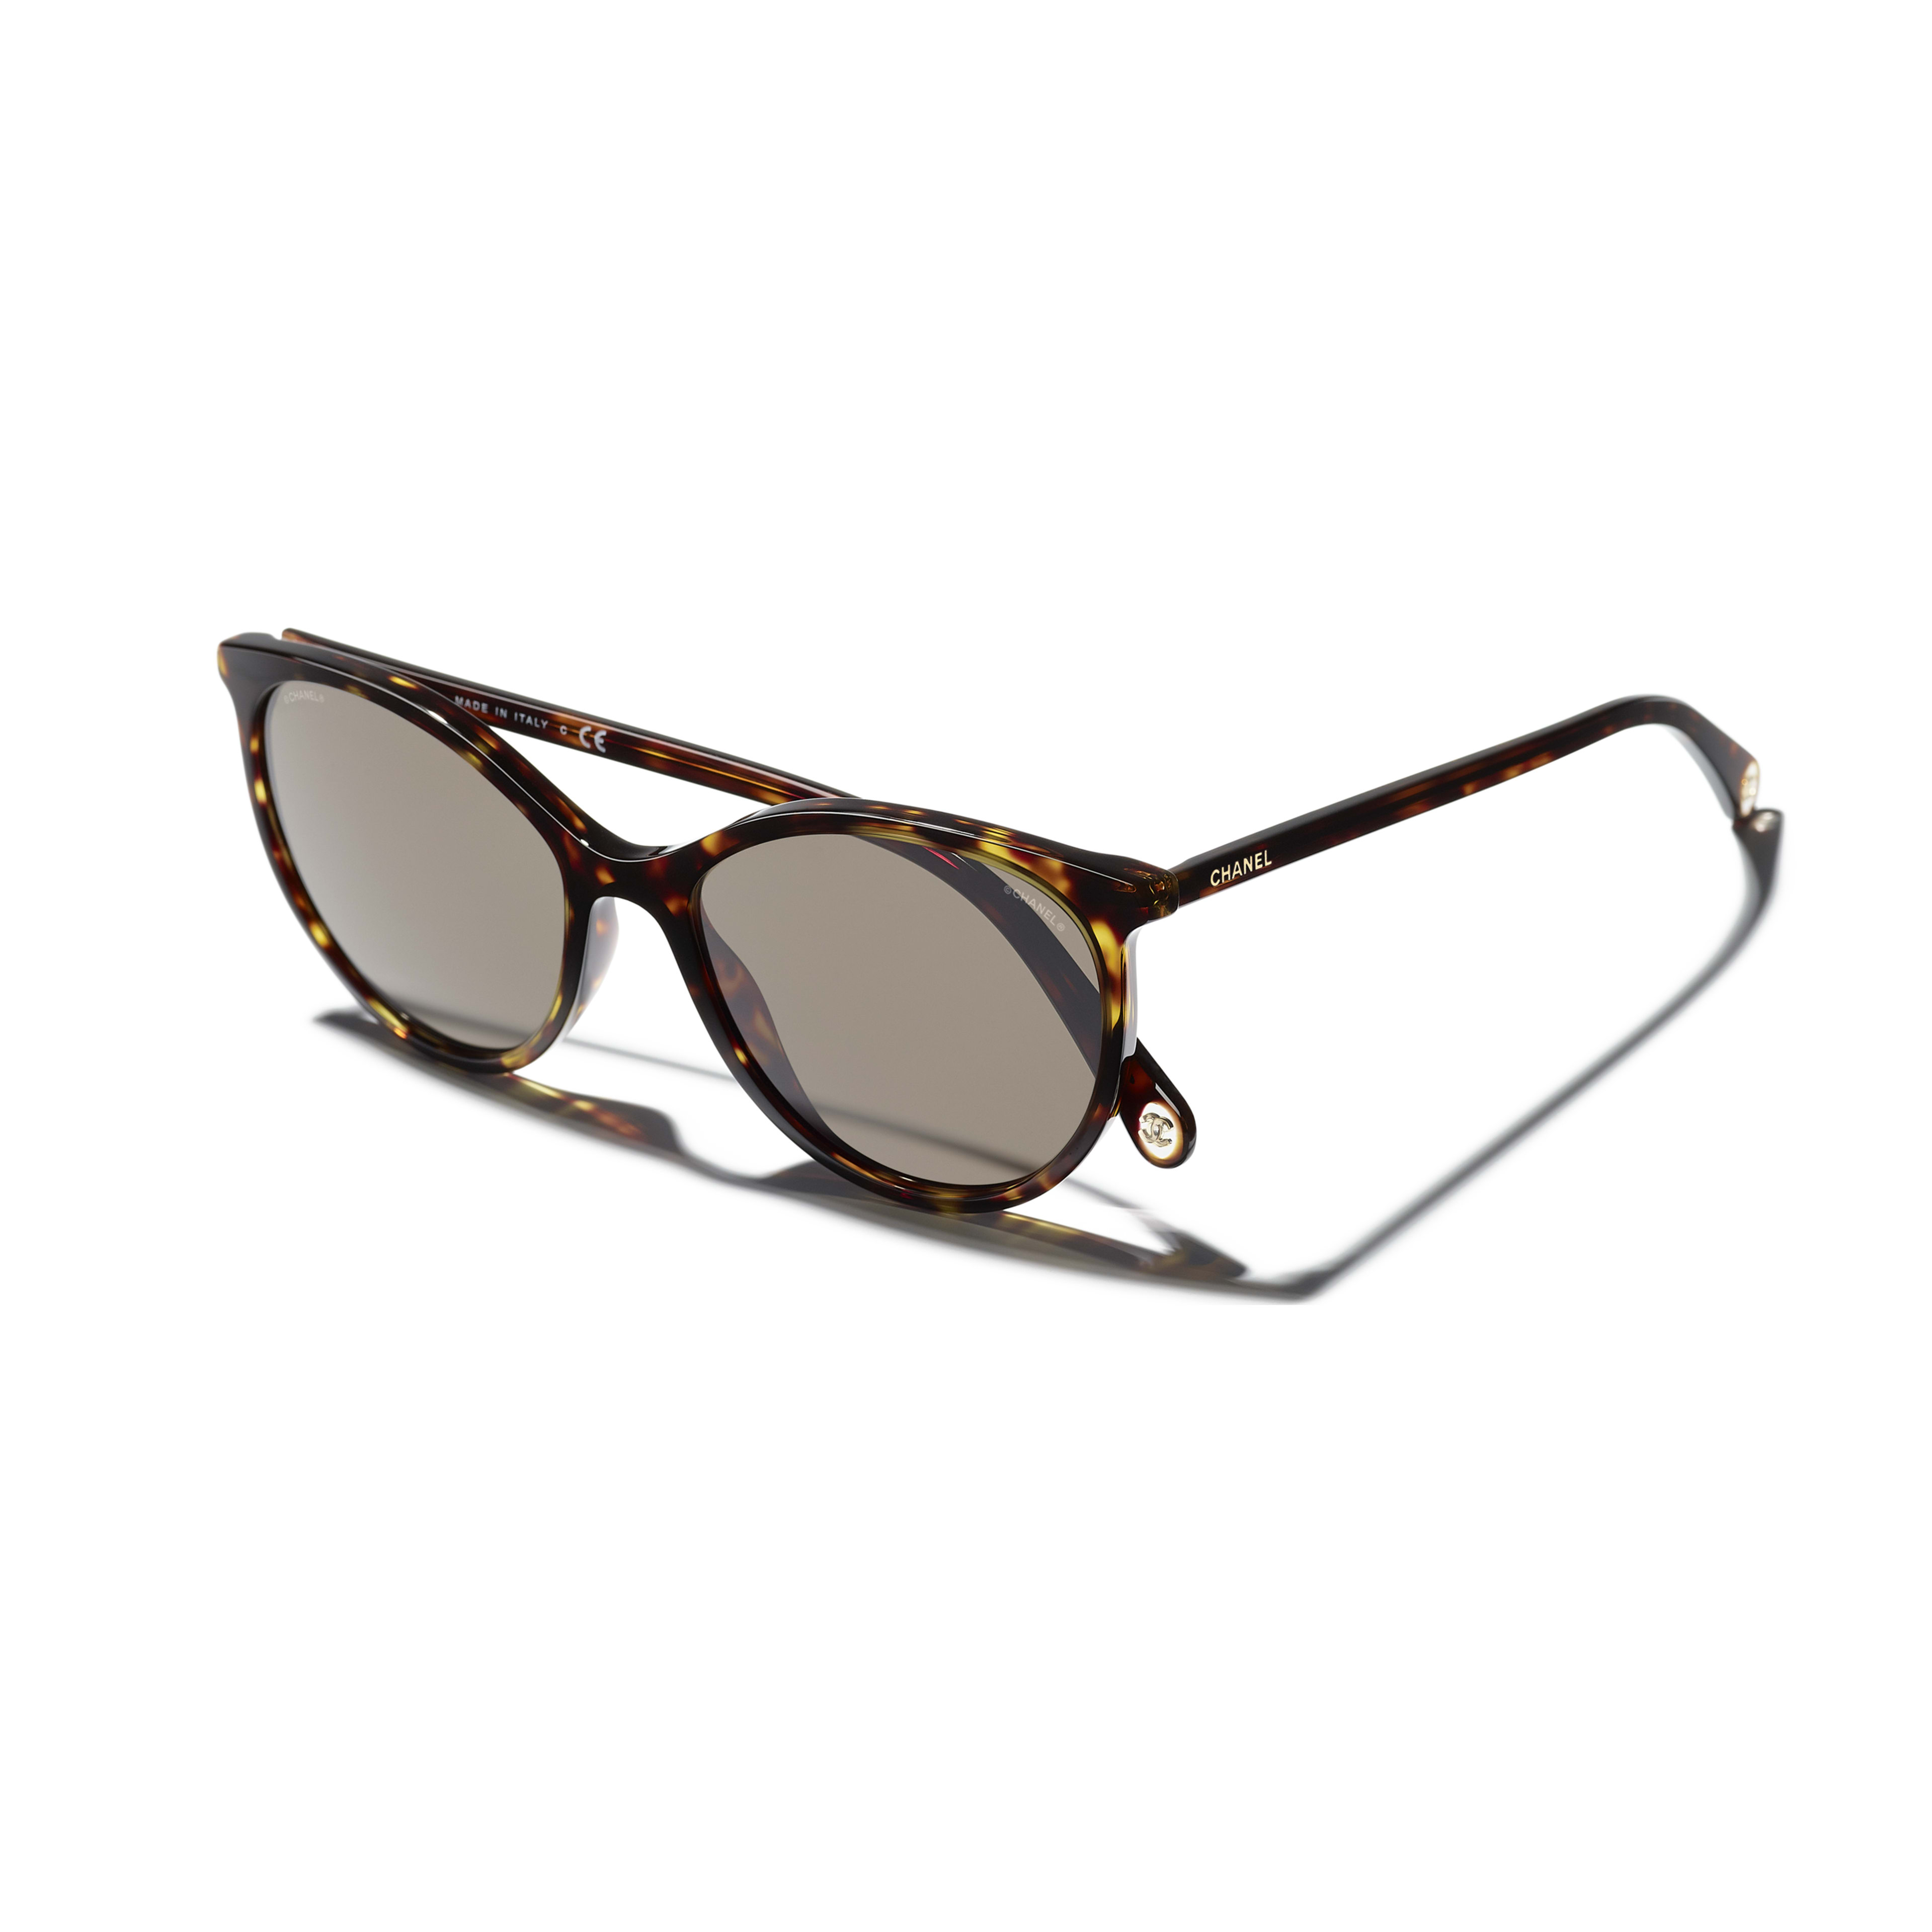 Pantos Sunglasses - Dark Tortoise - Acetate - CHANEL - Extra view - see standard sized version